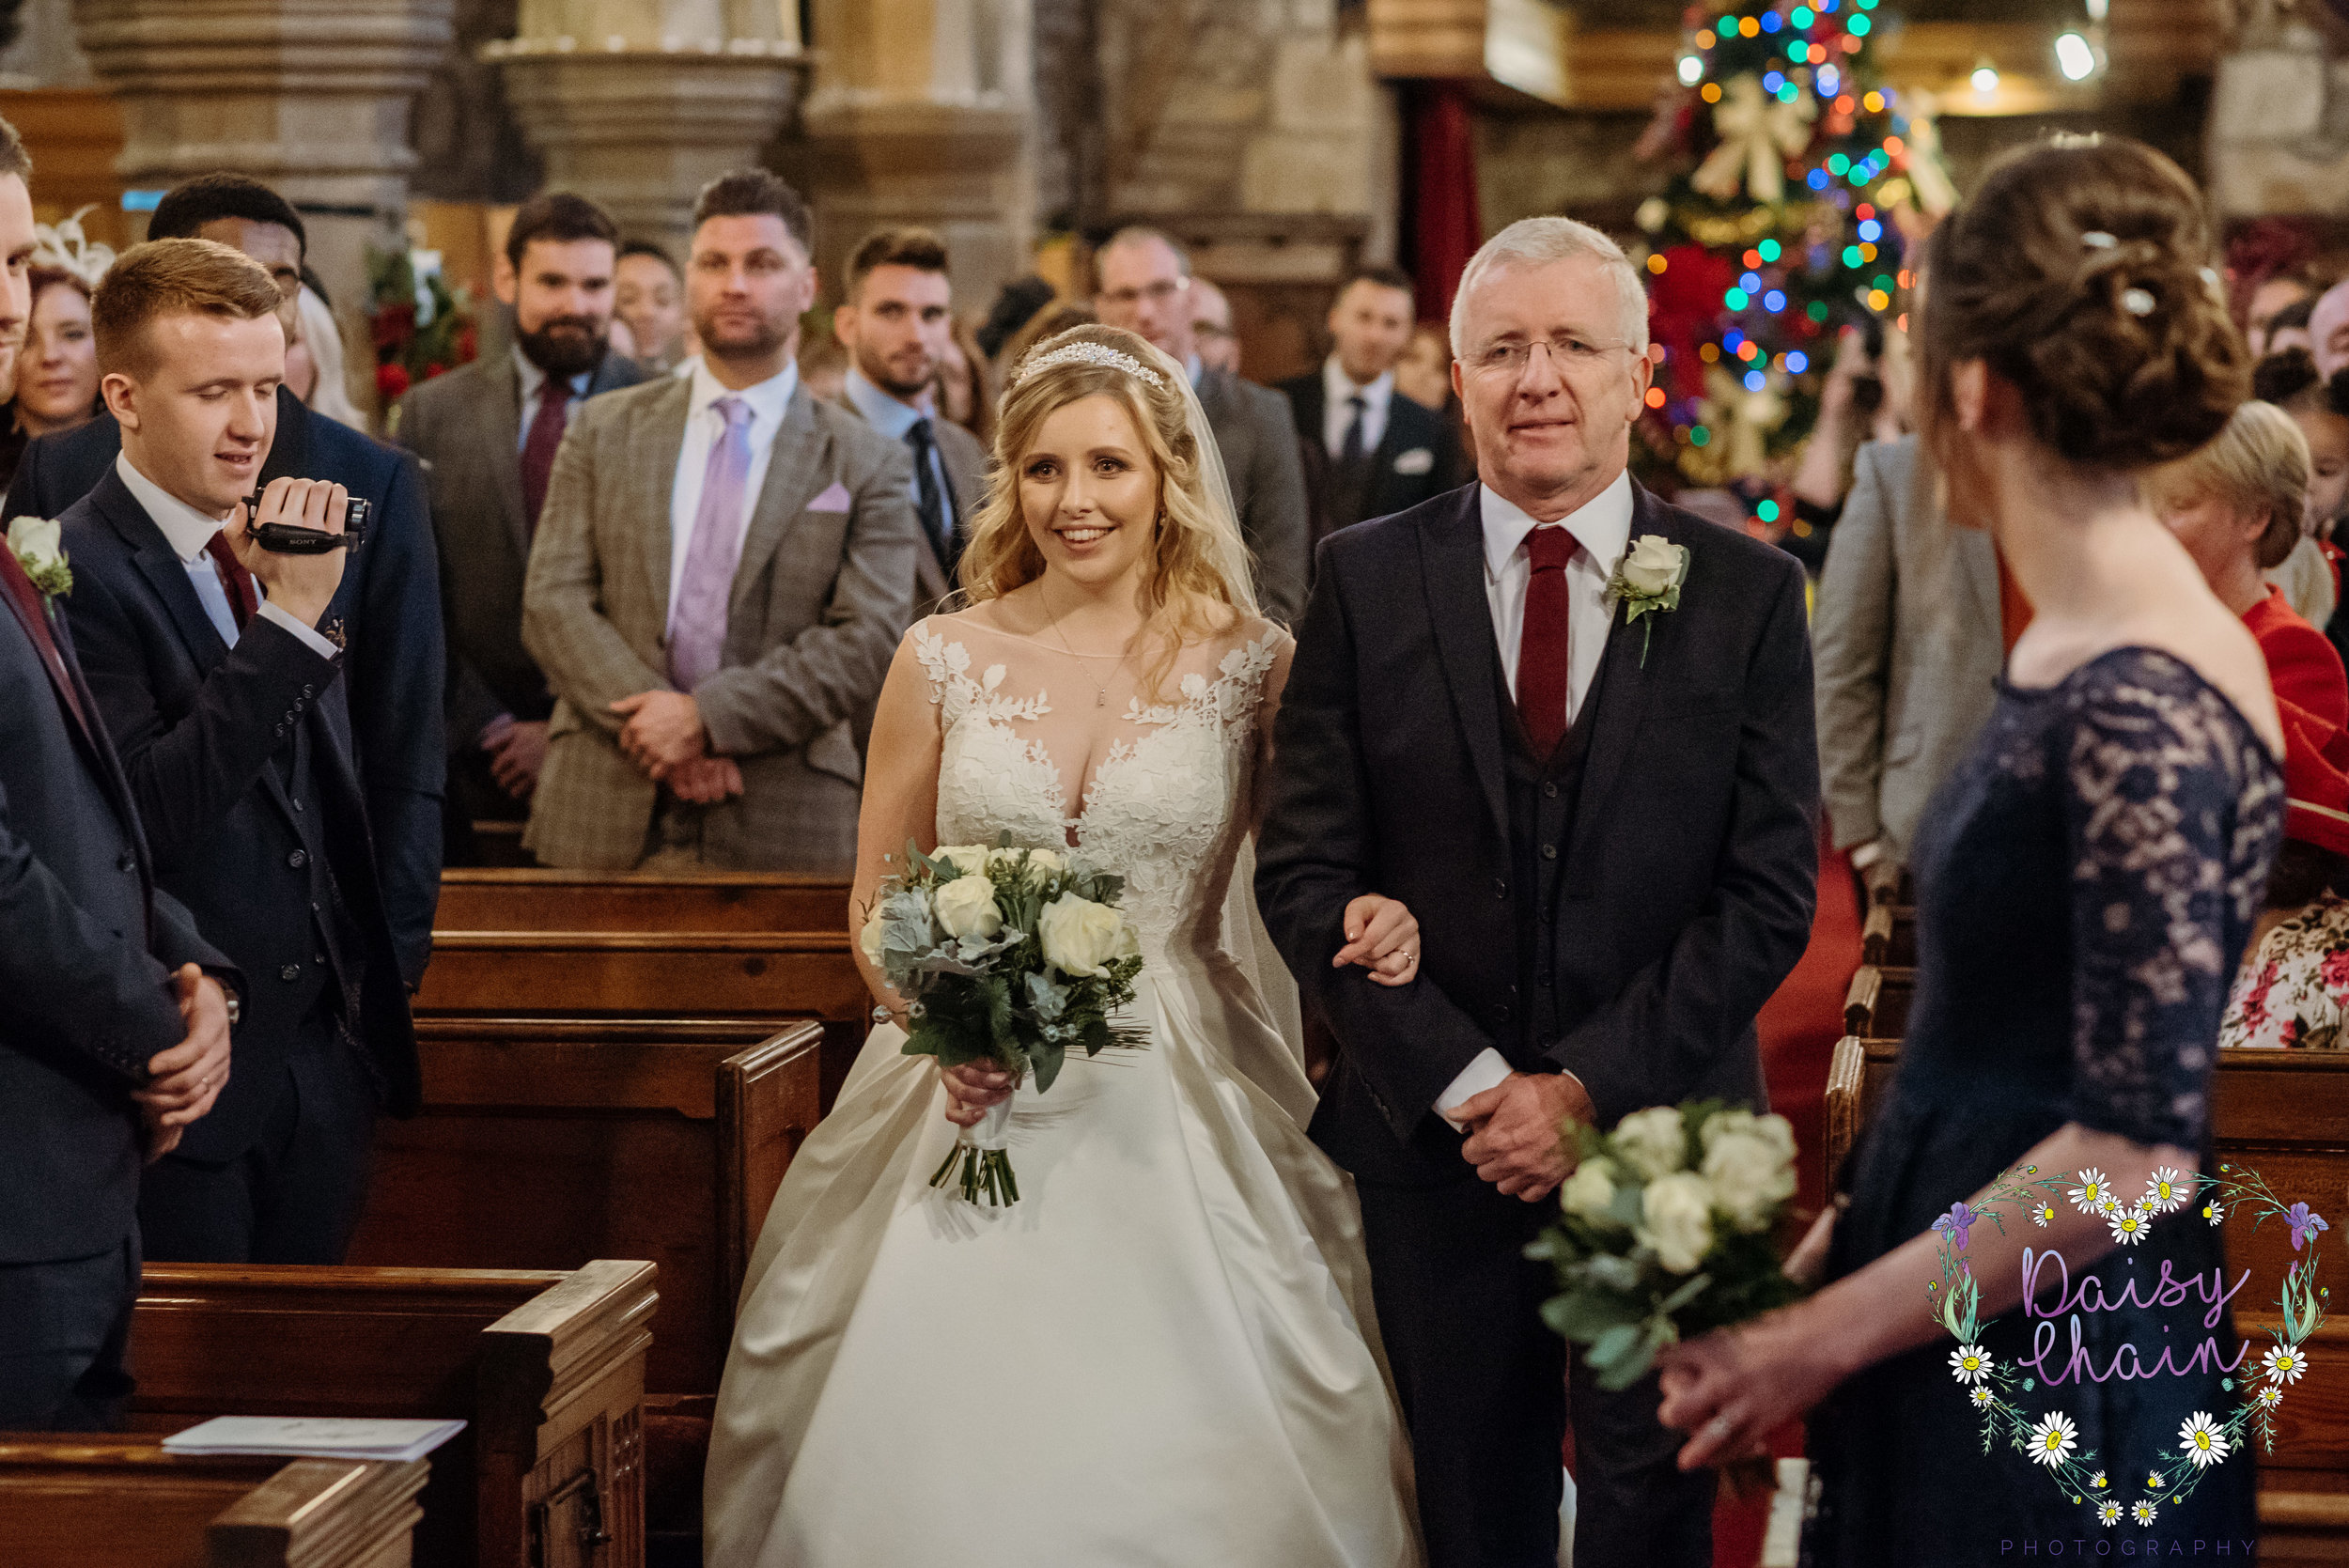 Church wedding lancashire